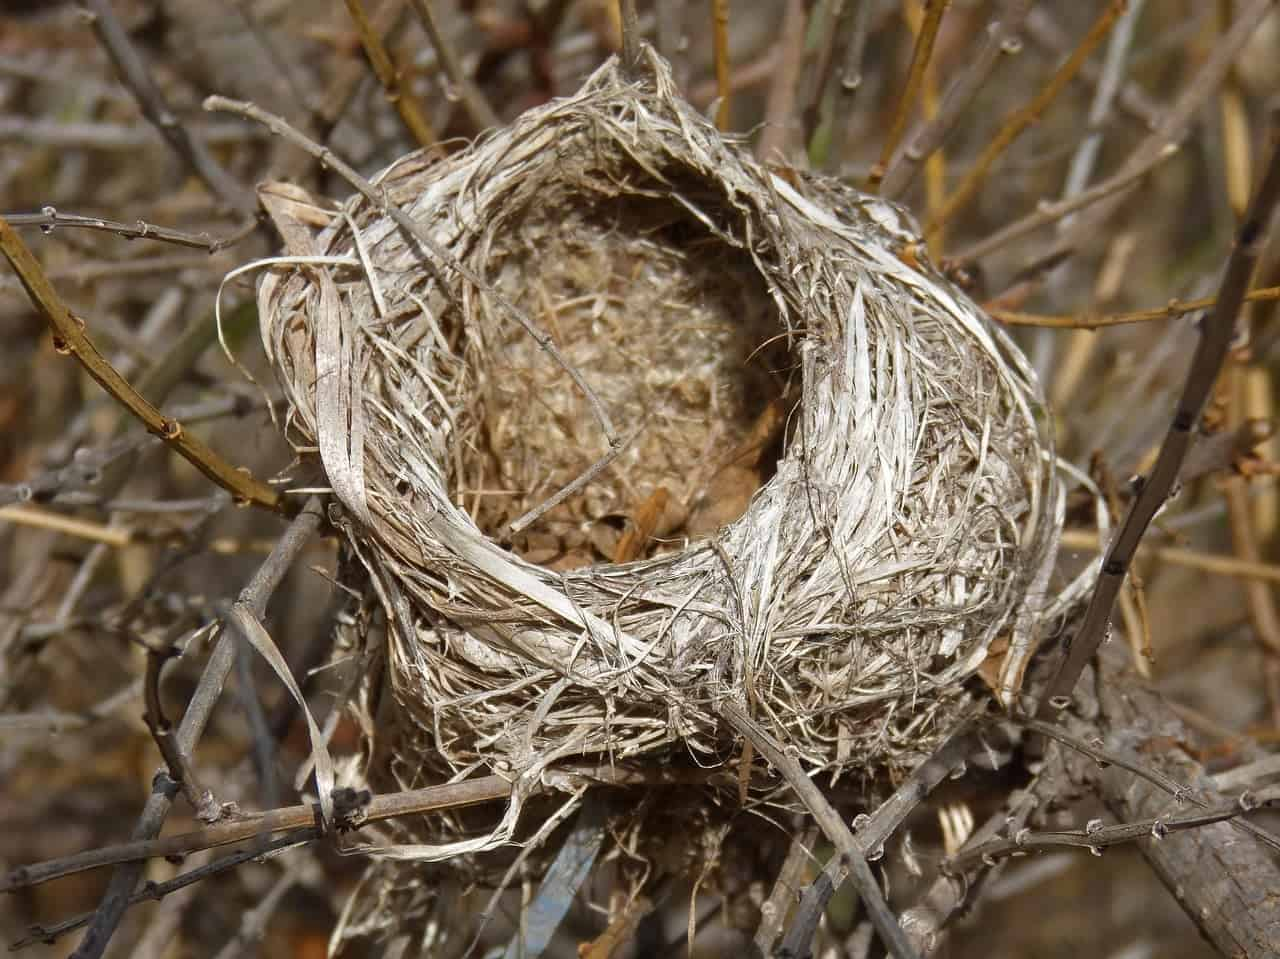 An Empty Nest - Facing a failed IVF cycle @bumpstobaby